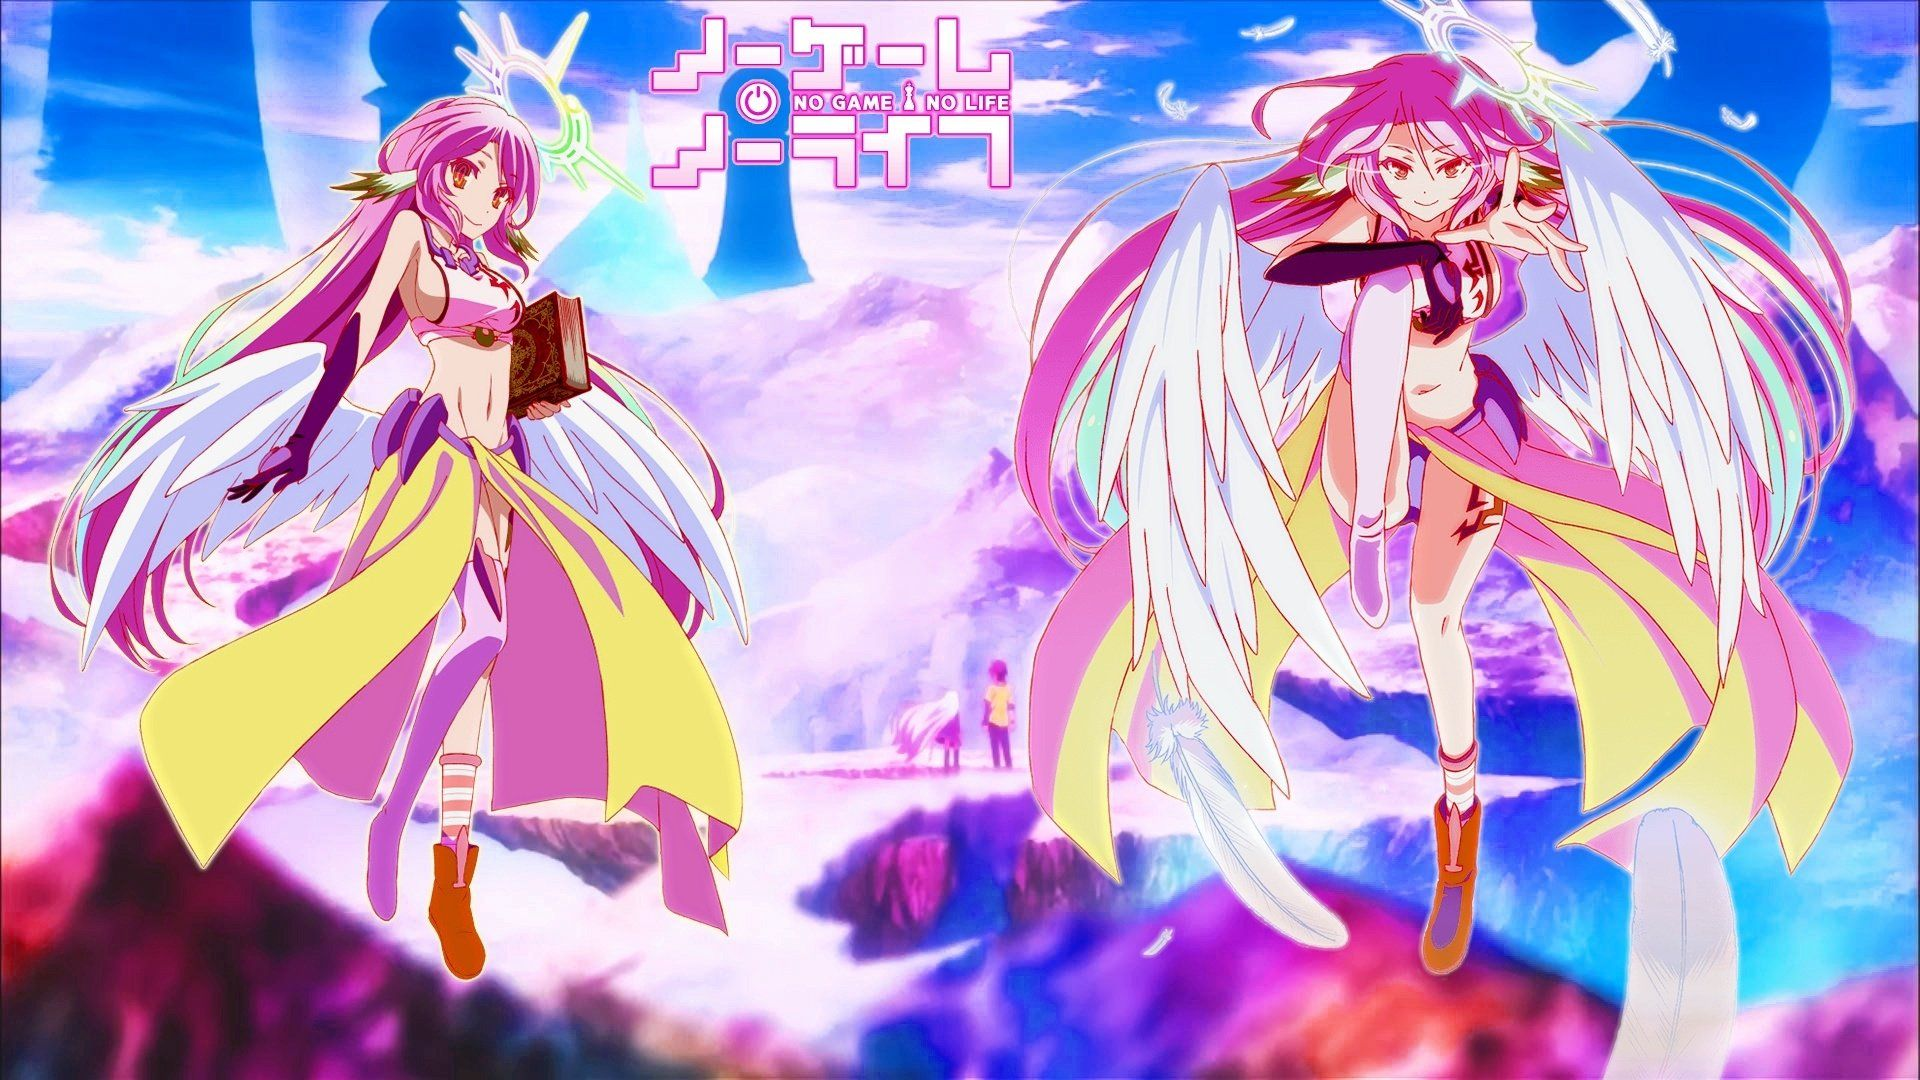 Jibril Wallpapers Top Free Jibril Backgrounds Wallpaperaccess